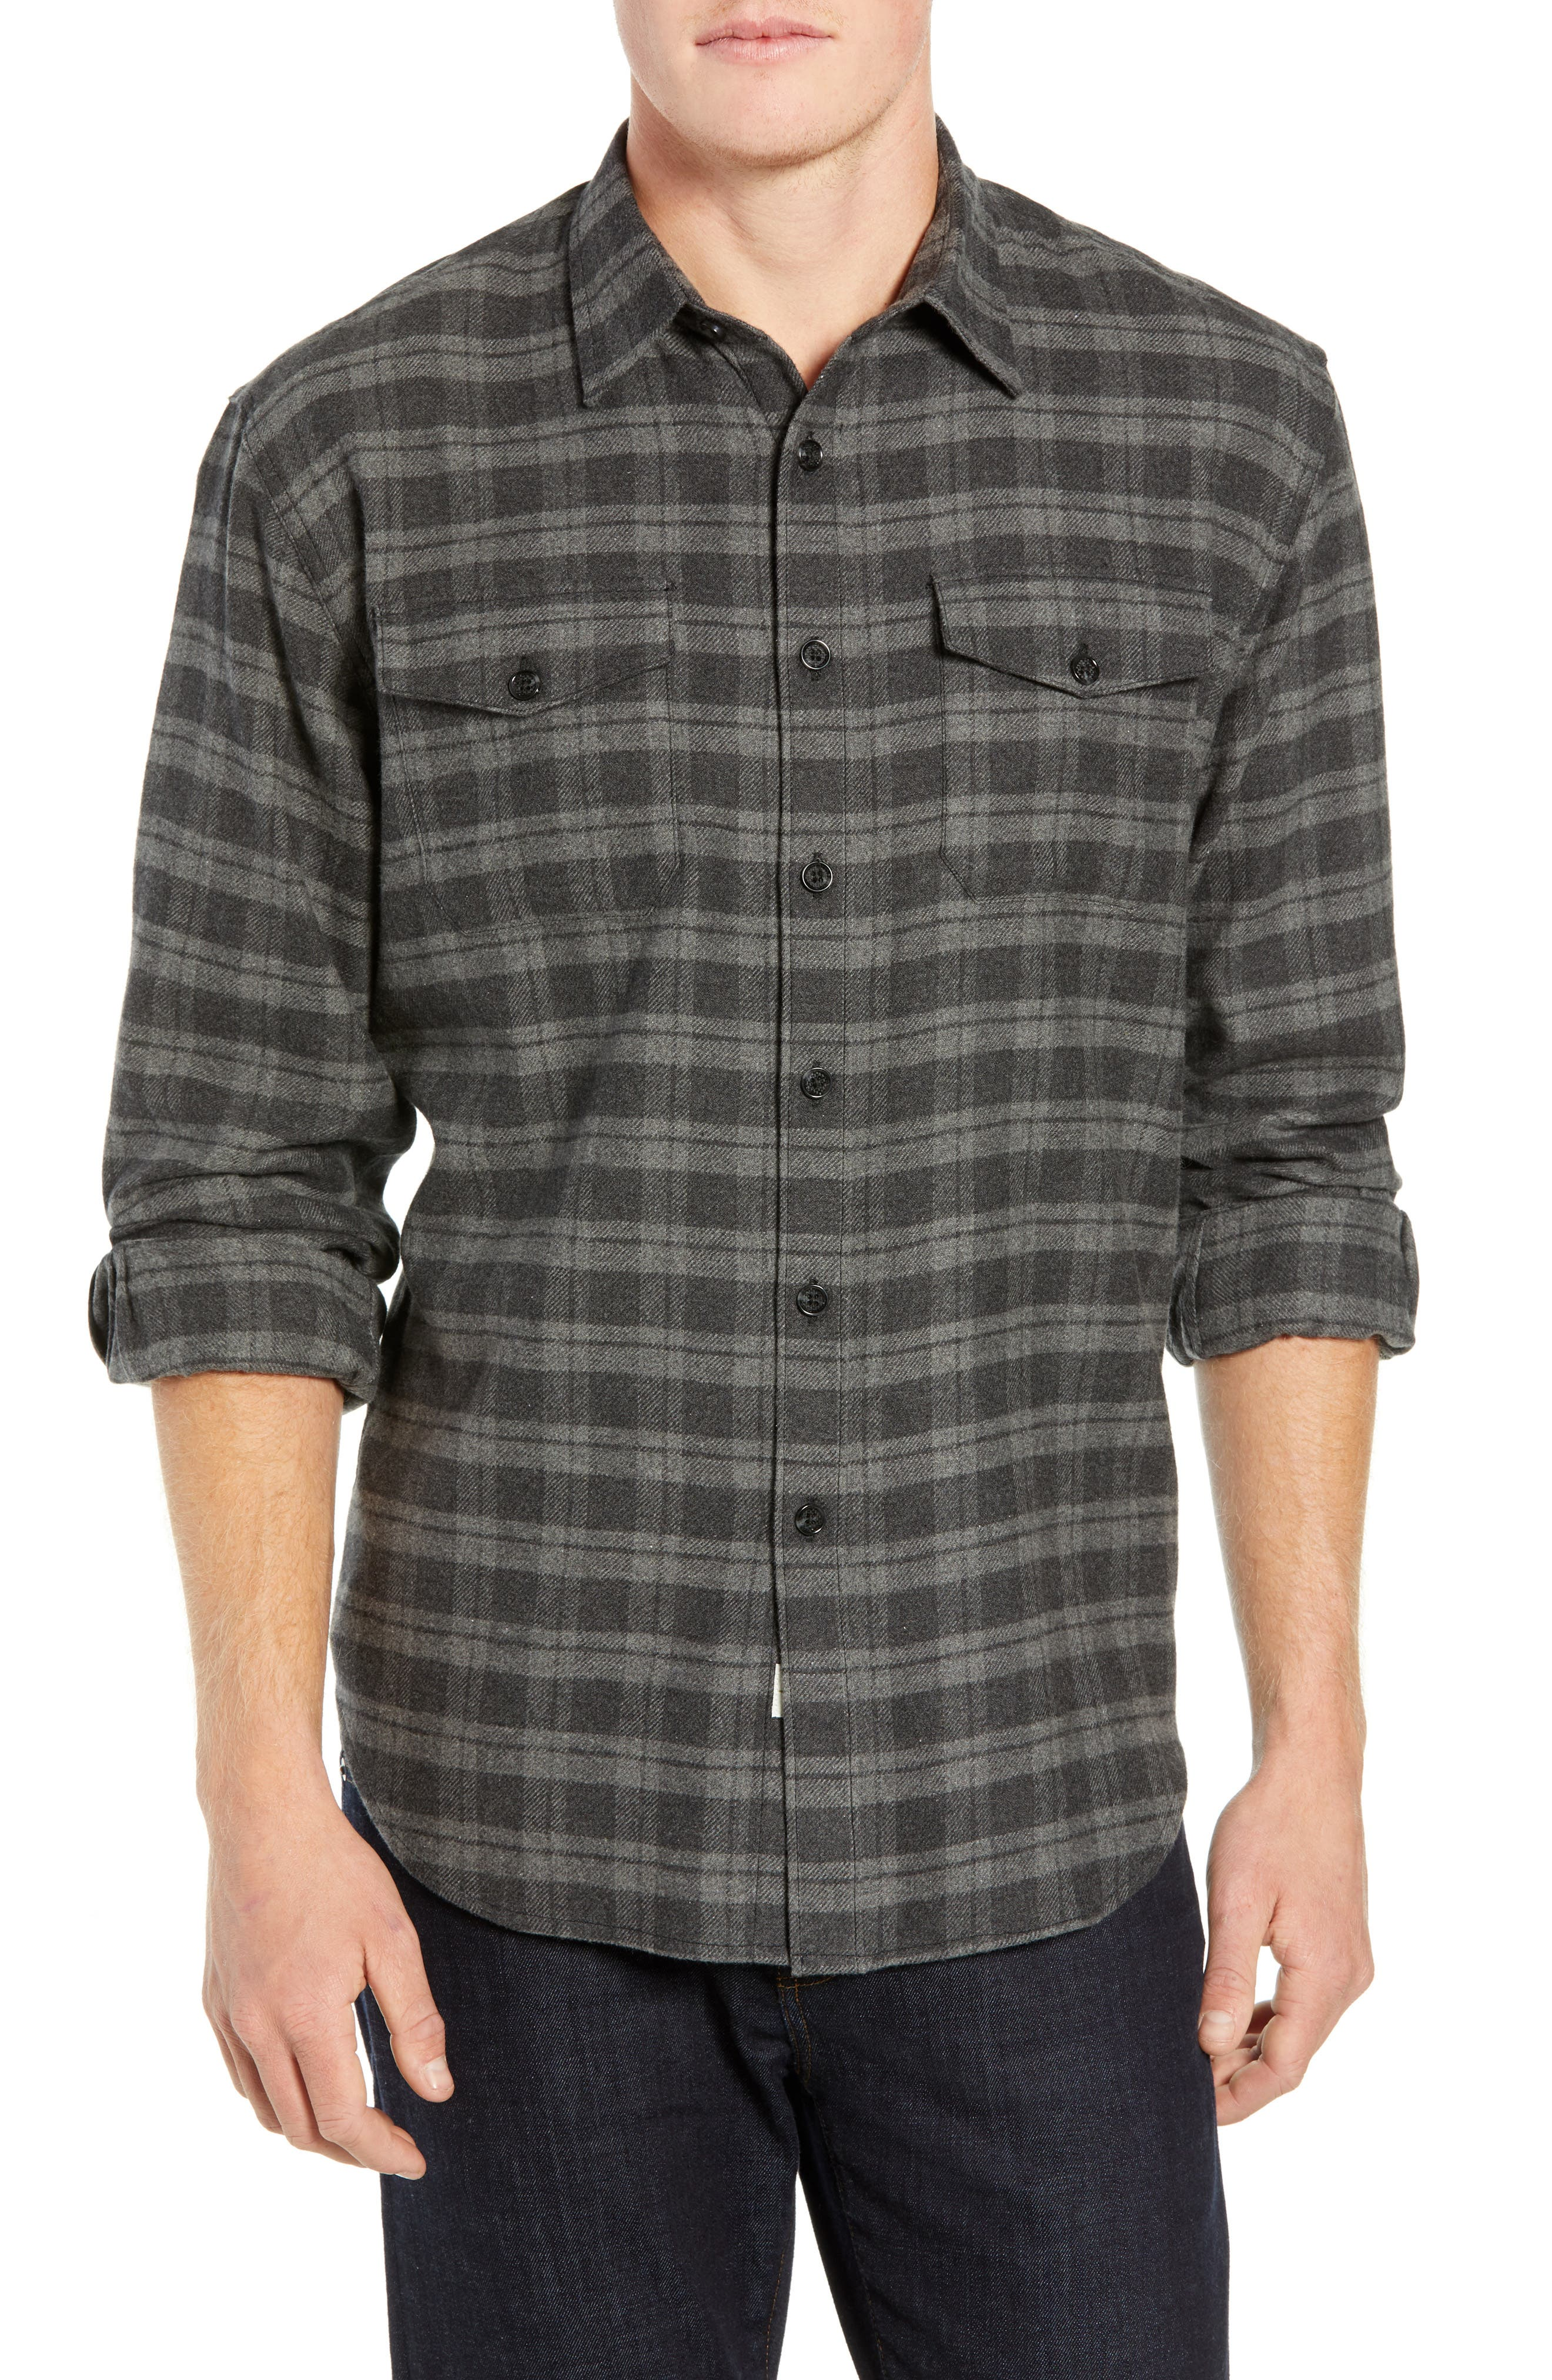 Coastaoro Encanto Regular Fit Plaid Flannel Shirt